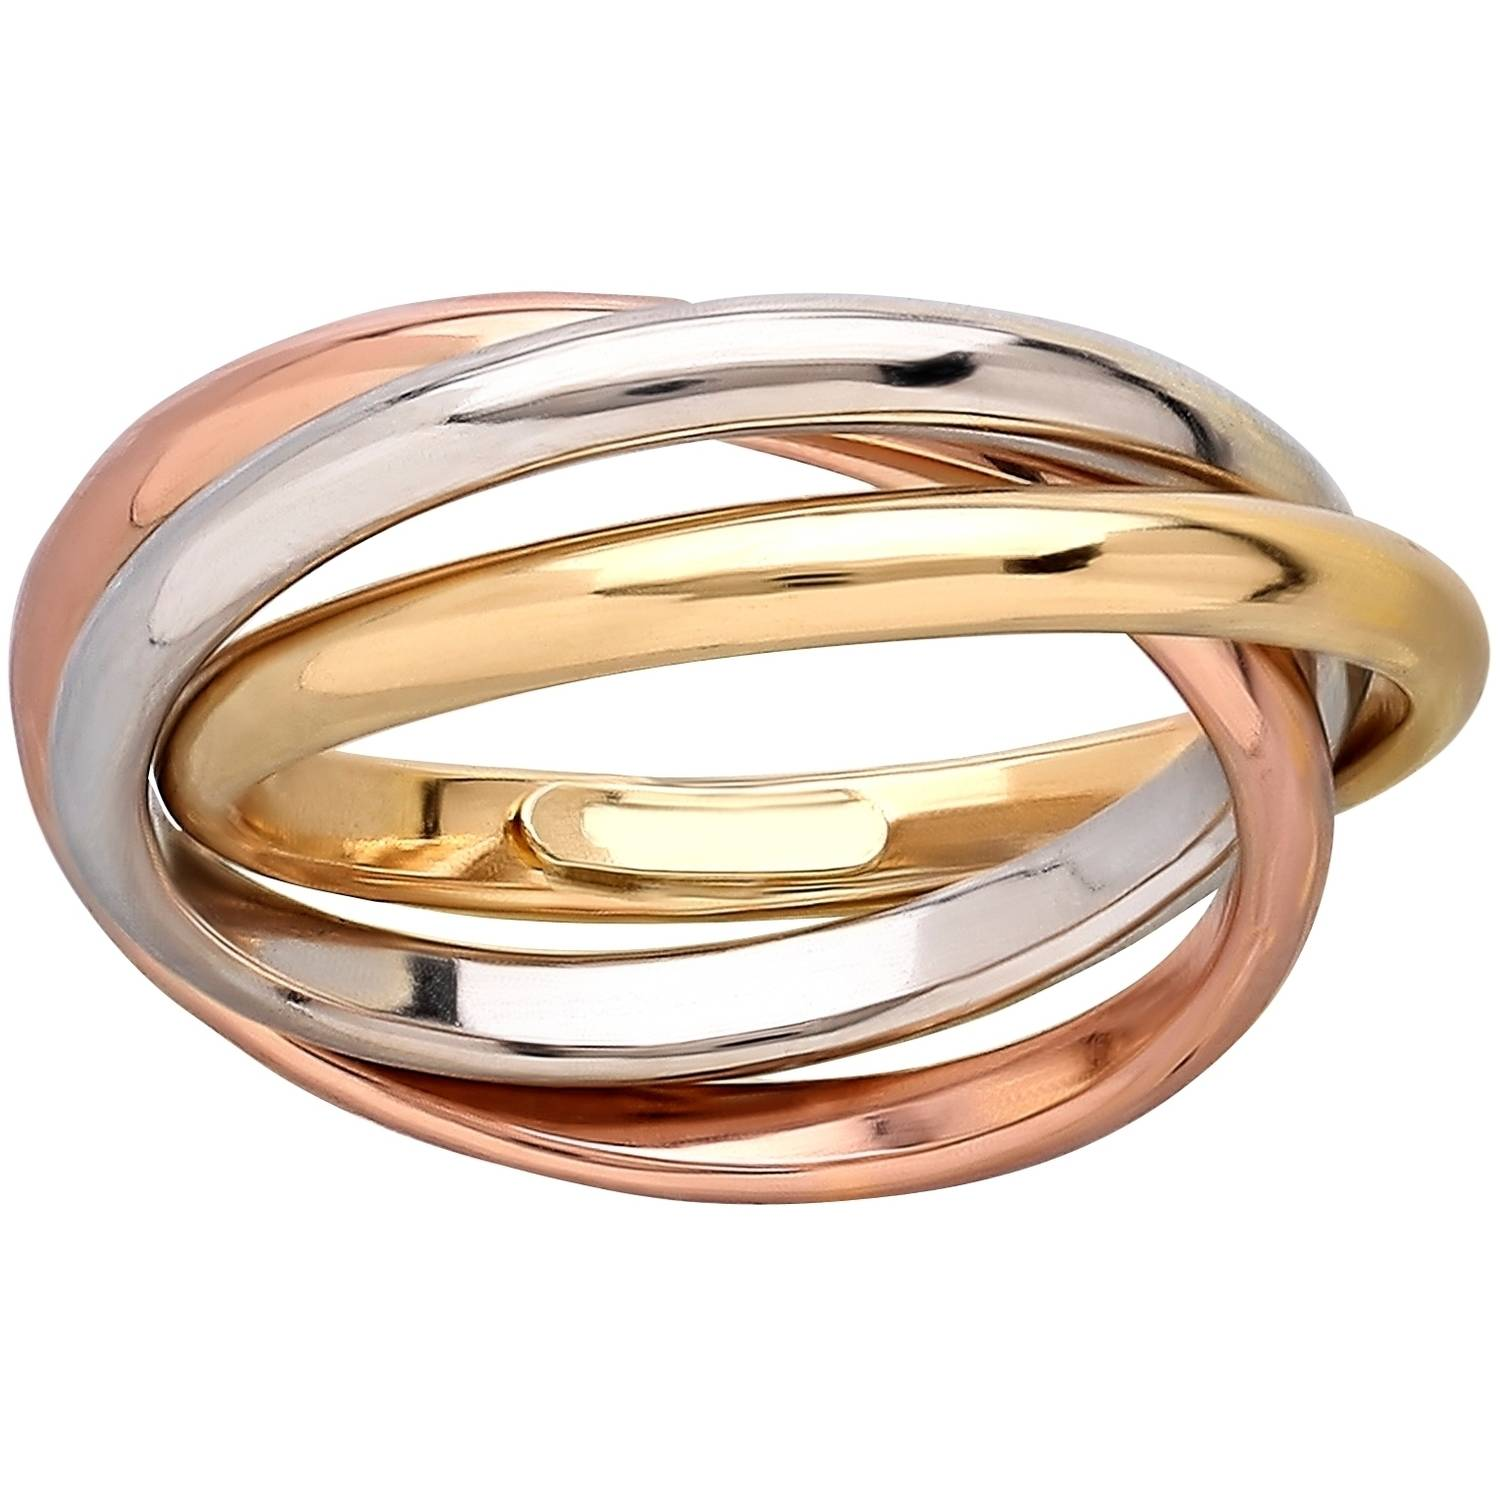 Simply Gold 10kt Yellow, Pink and White Gold Triple Rolling Size 7 Ring